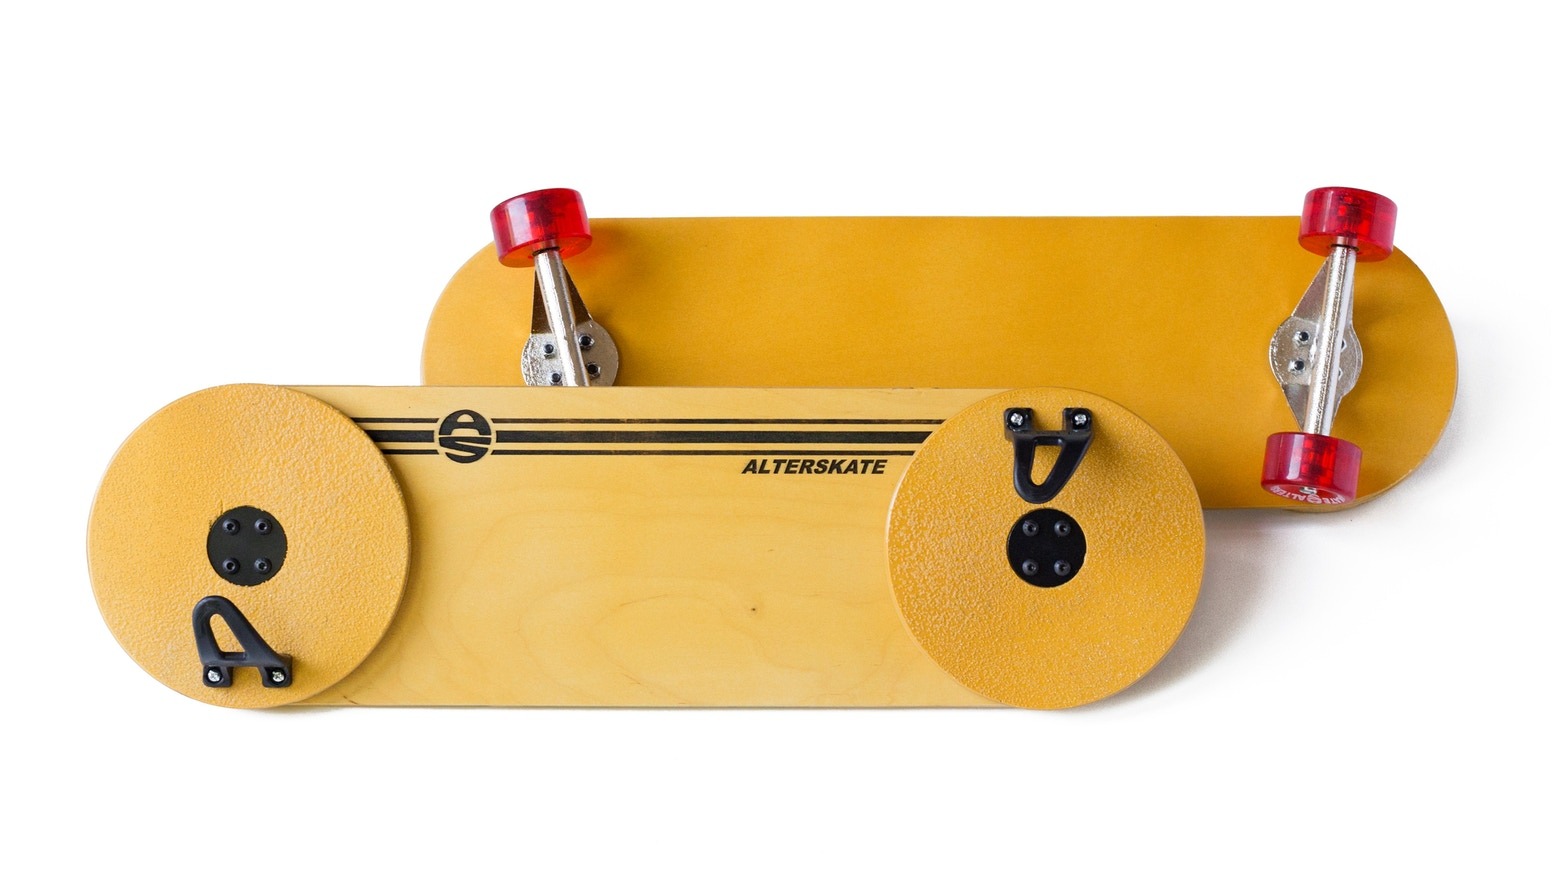 An alternative board for skating. Multi-directional and super-smooth.